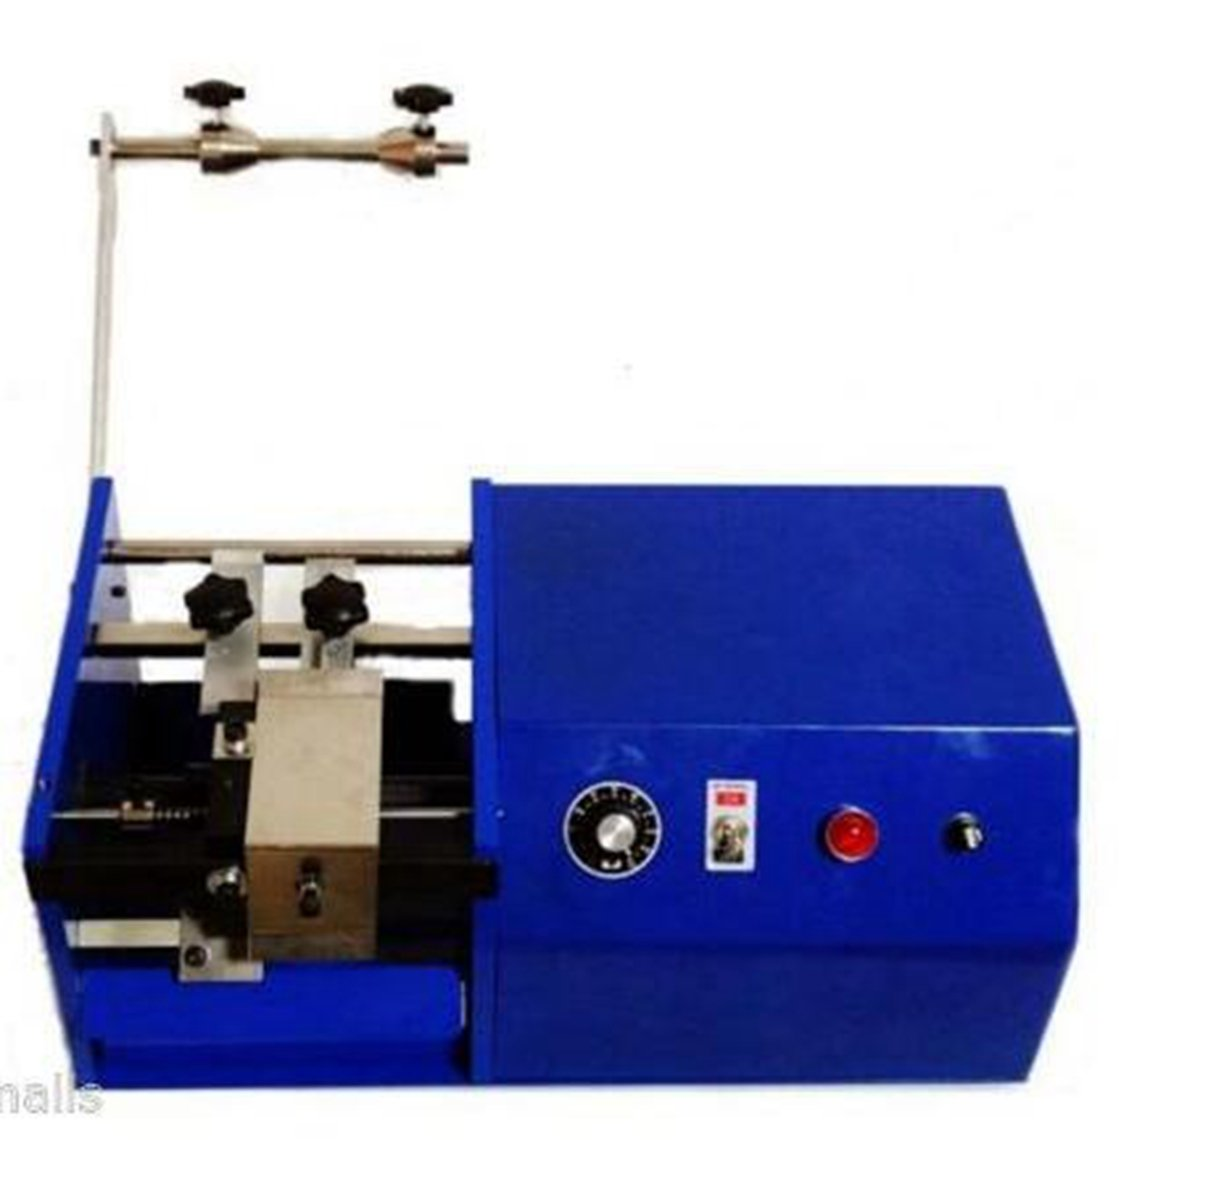 Welljoin Automatic Capacitor Belt Cutting Machine